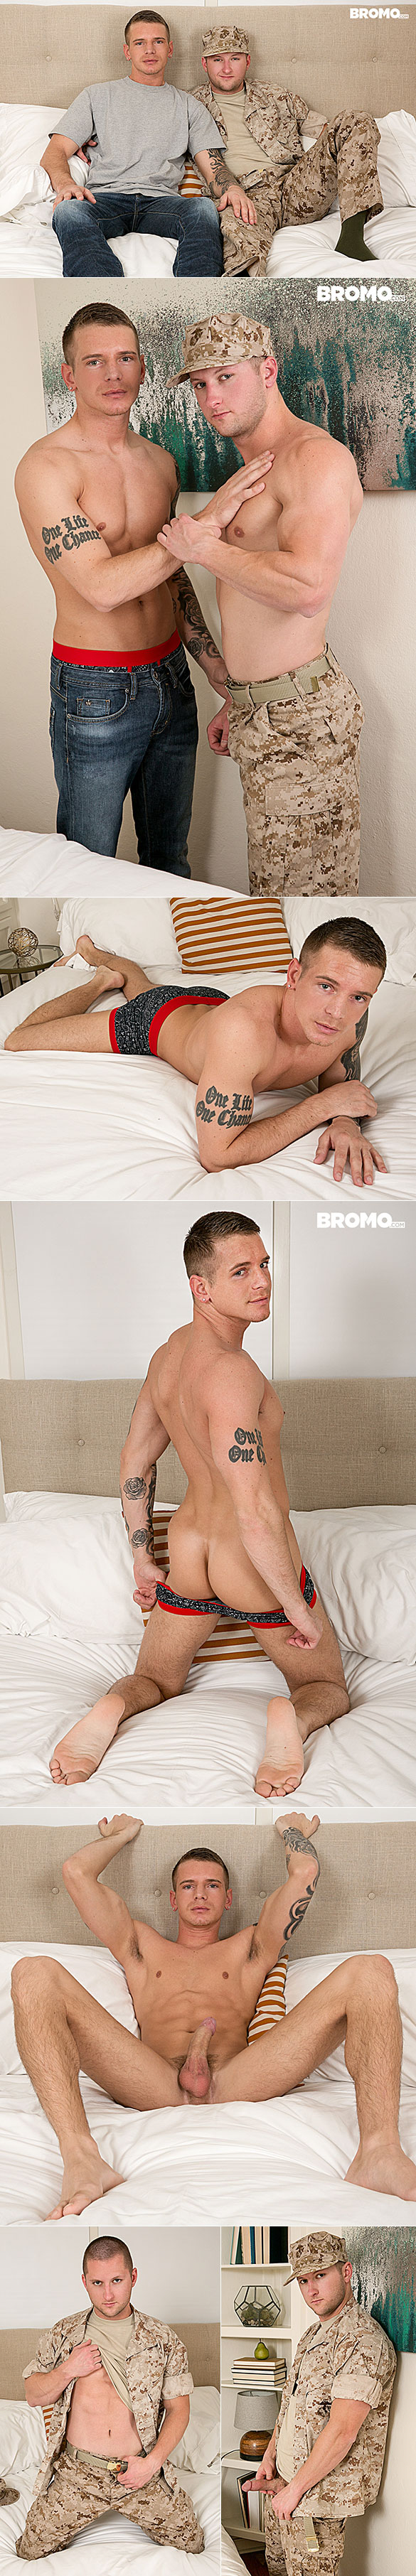 "Bromo: Benjamin Swift fucks Gunner Canon in ""Breed My Boyfriend, Part 1"""